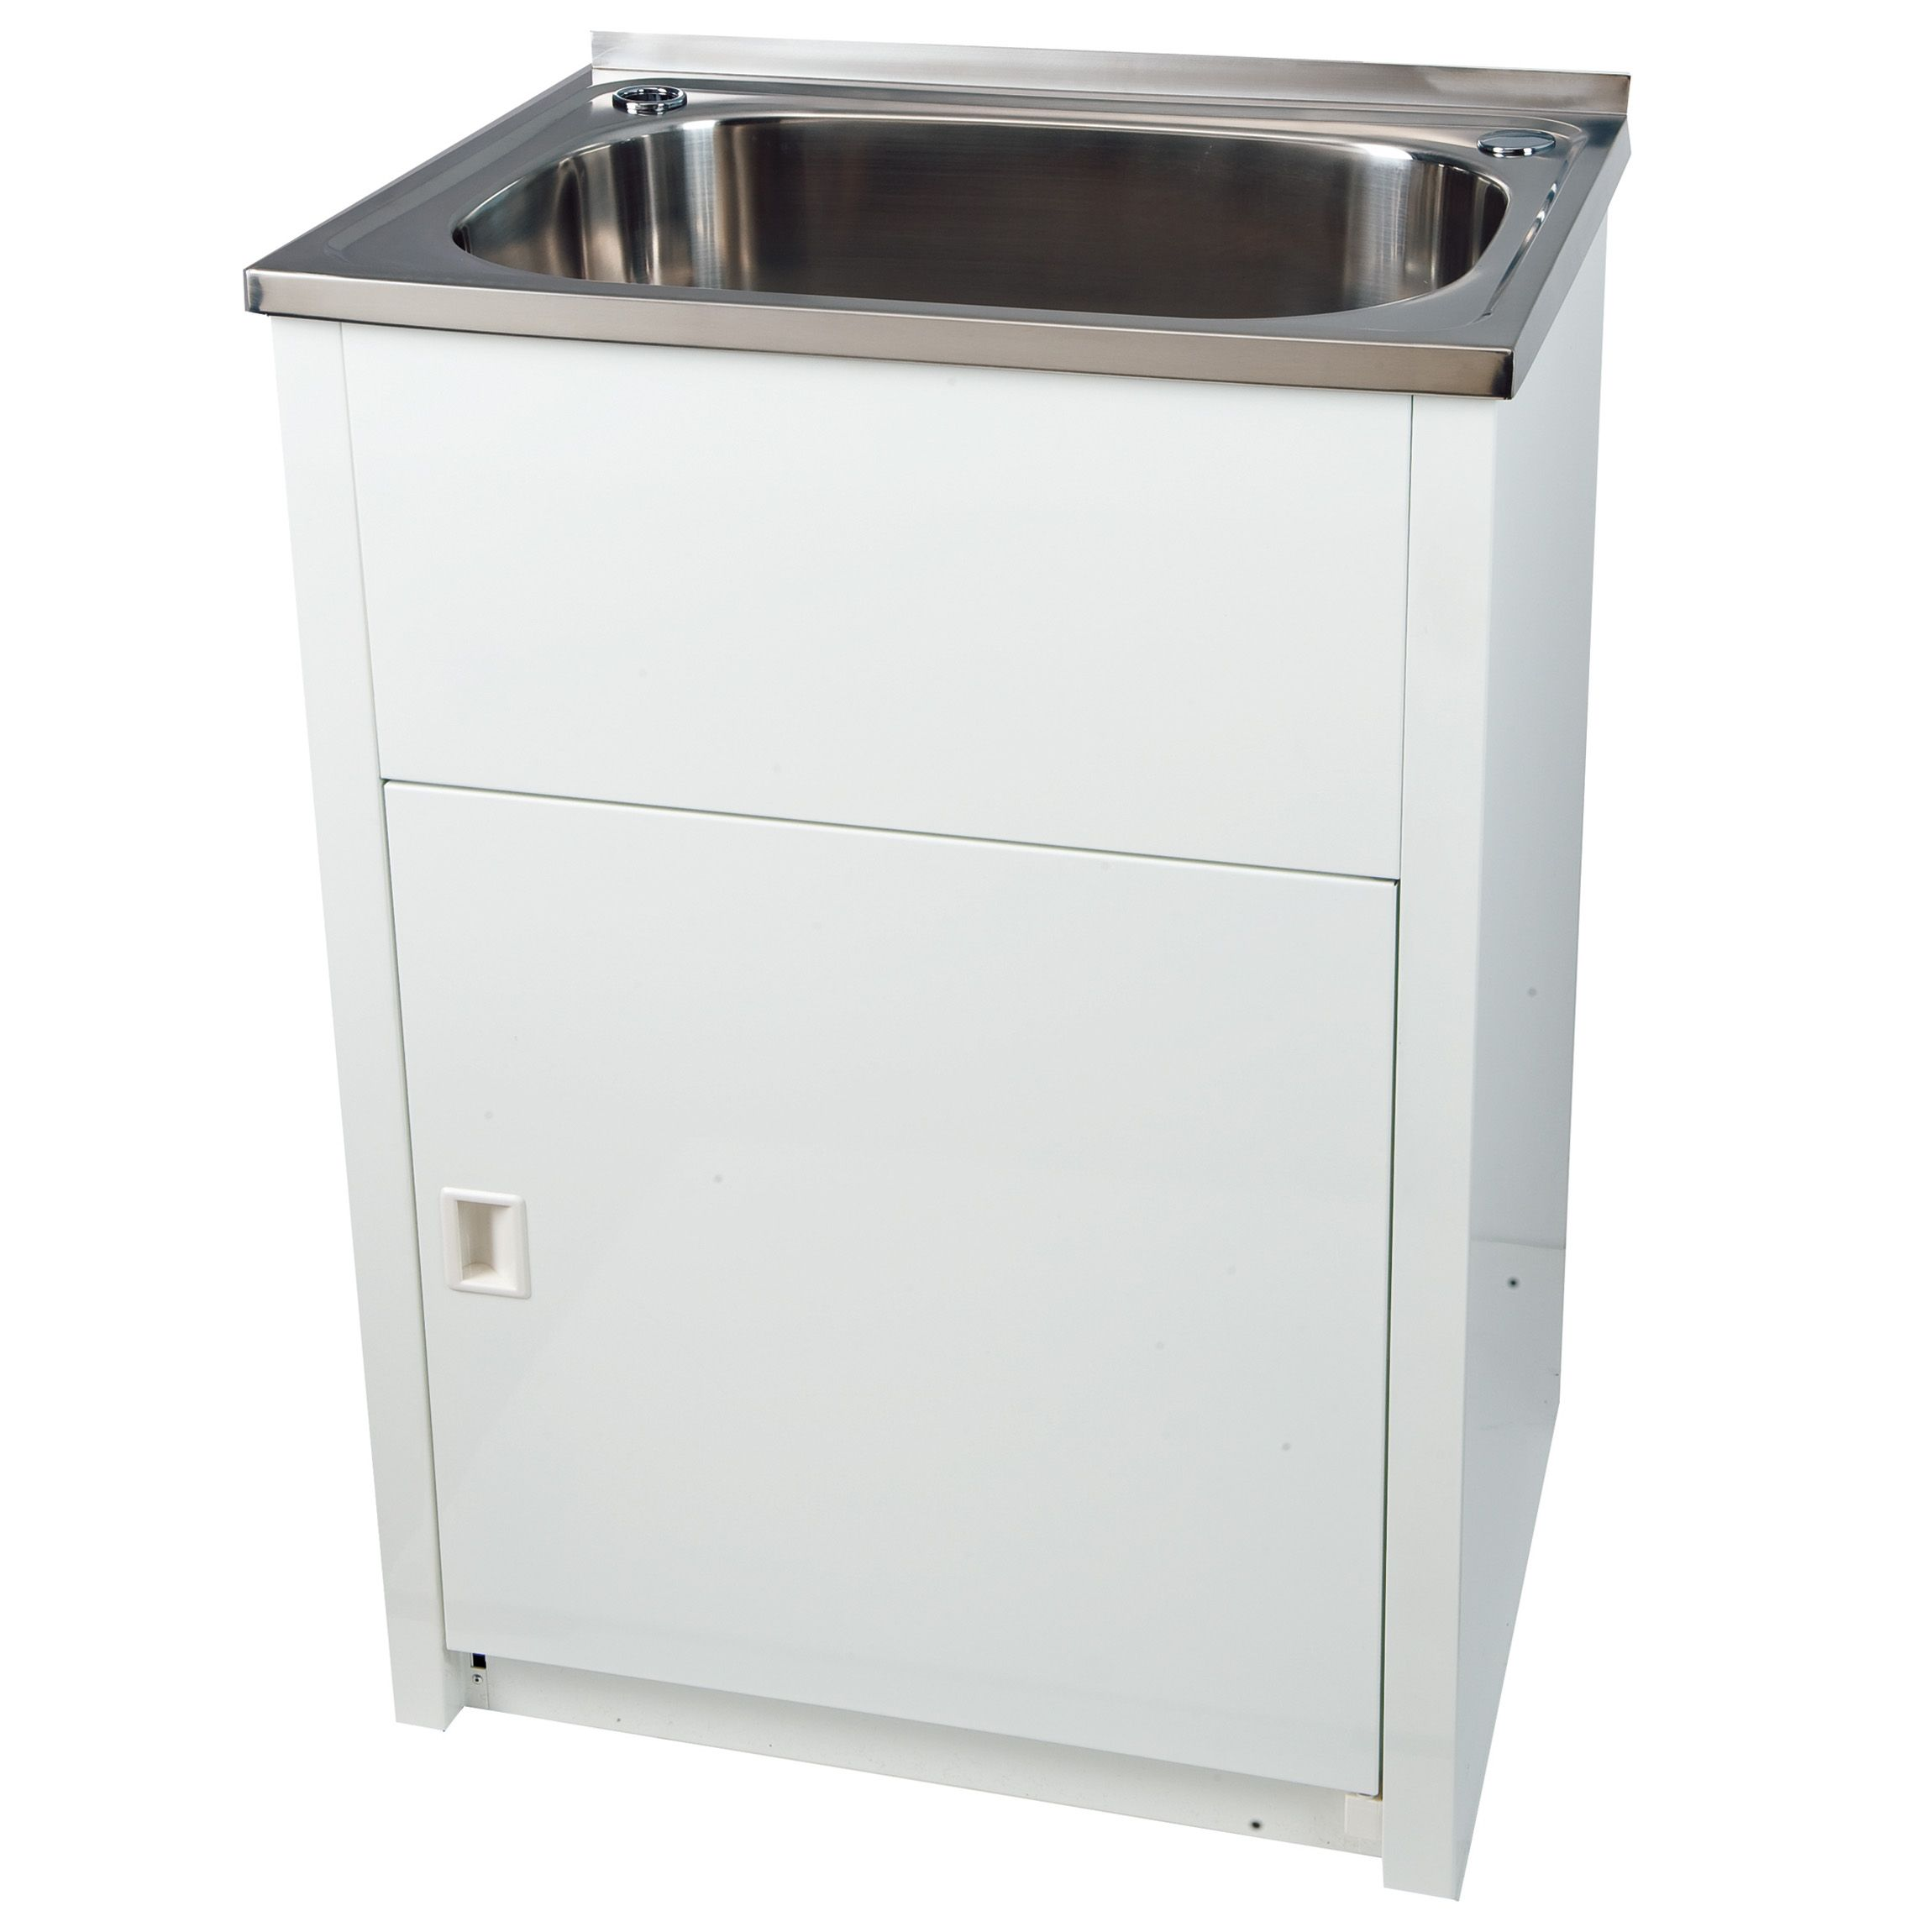 Everhard 45l laundry trough and cabinet 71076 bunnings for Kitchen cabinets bunnings